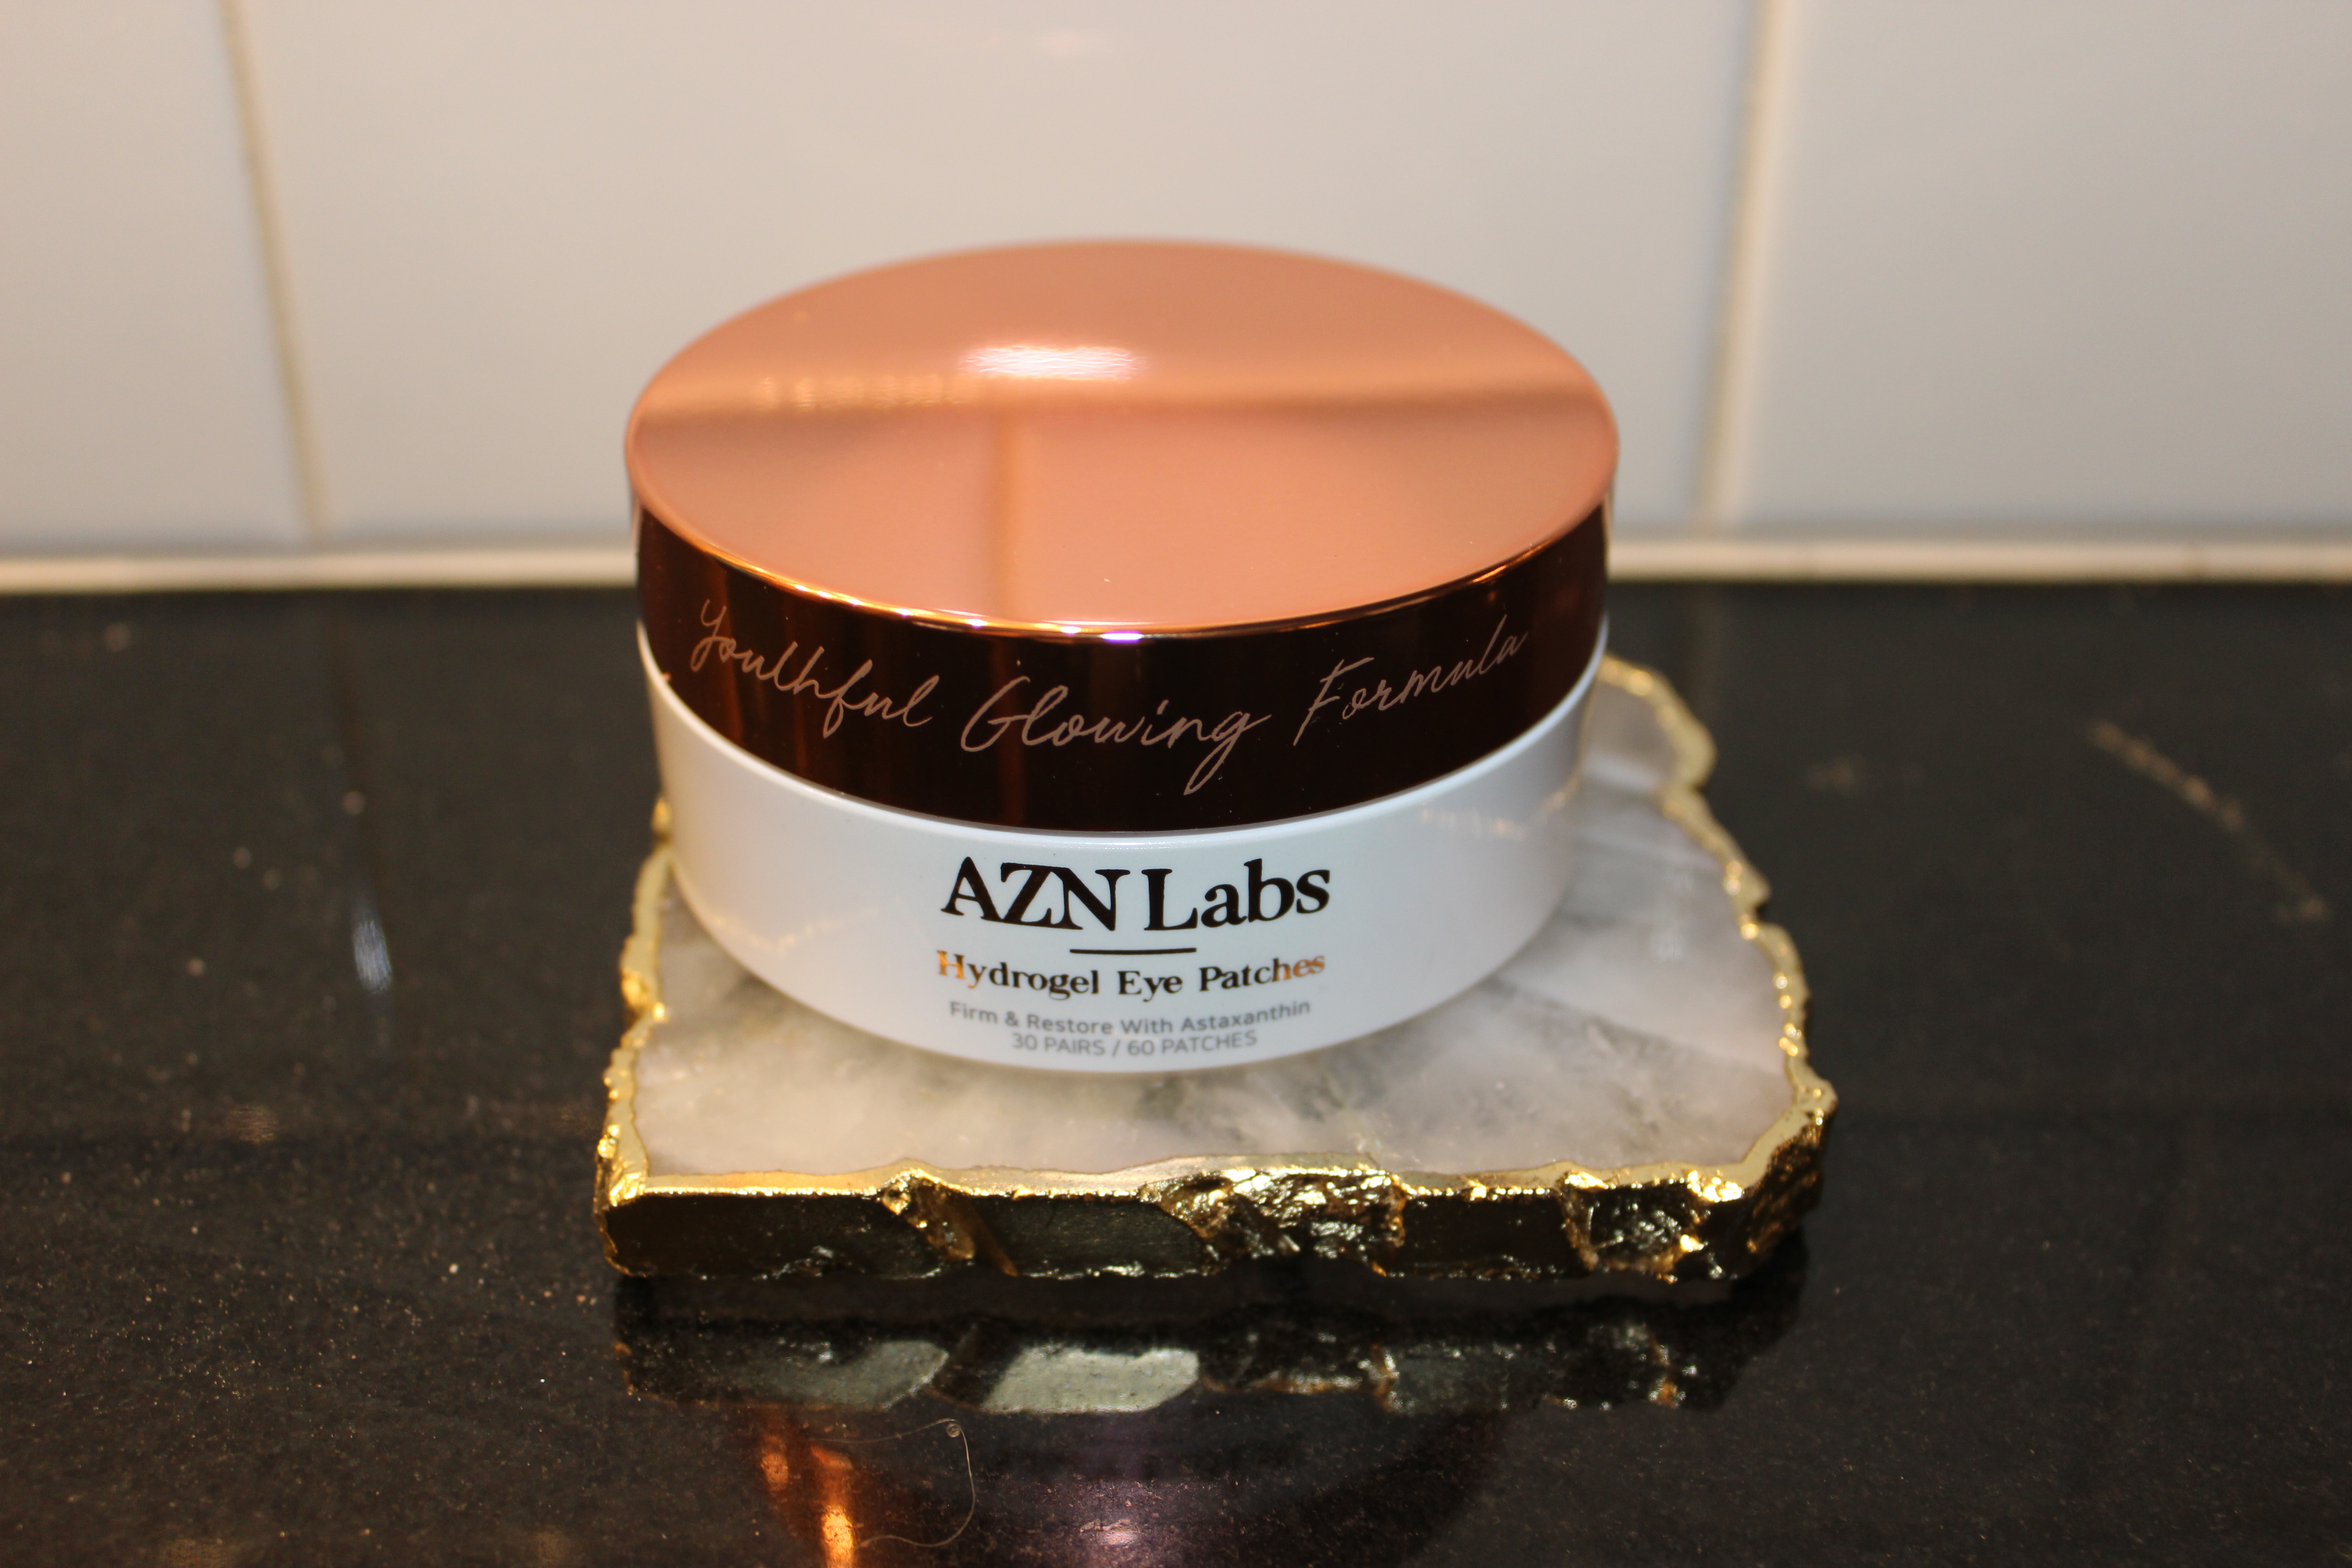 AZN Labs Hydrogel Eye Patches